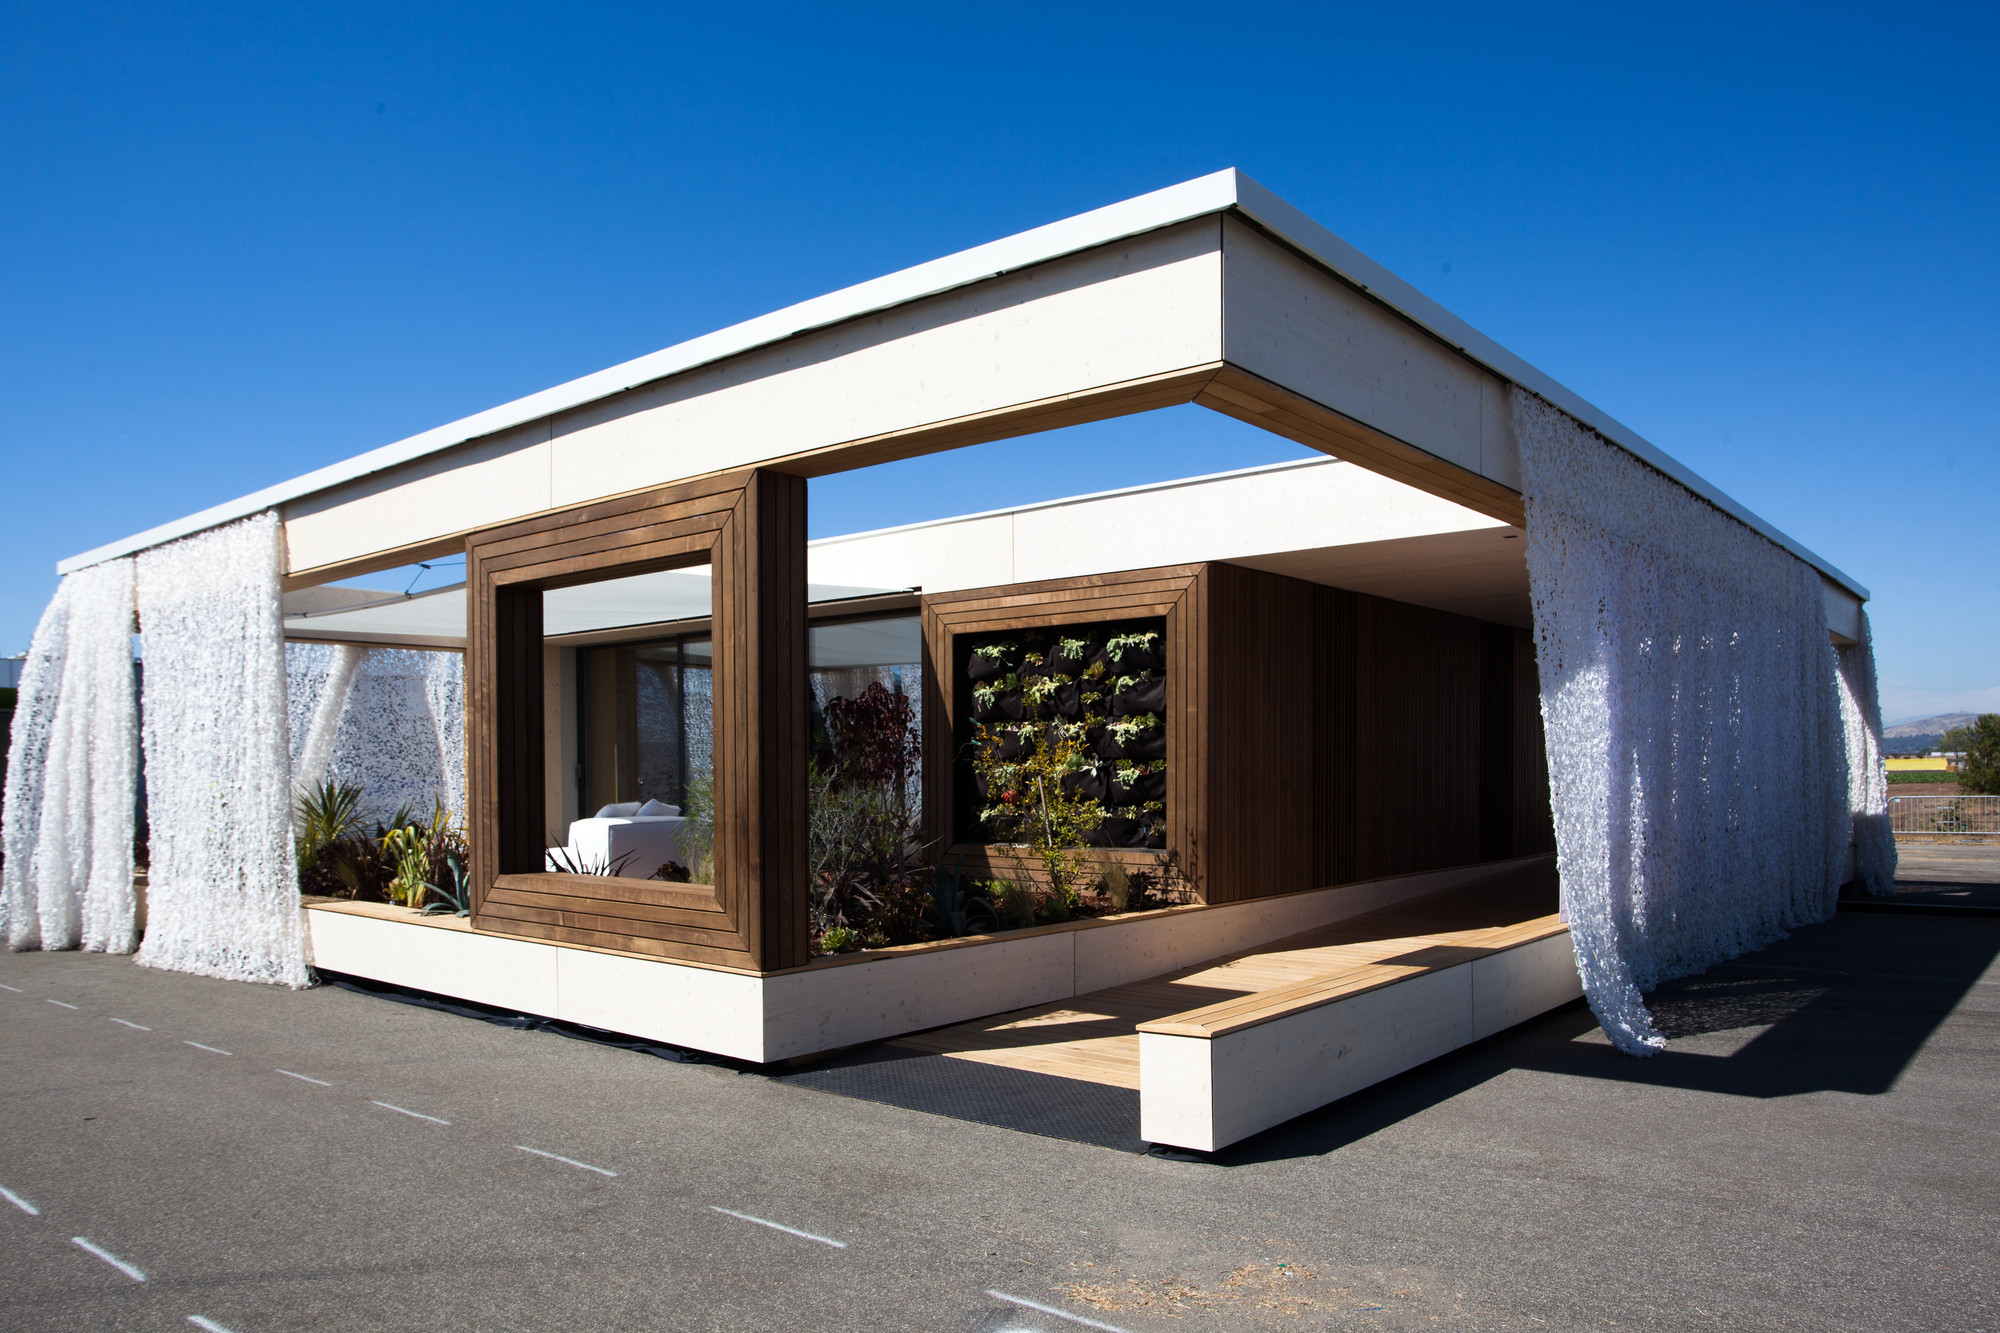 Container Haus Wien Solar Decathlon 2013 Team Austria Wins Top Honors Archdaily